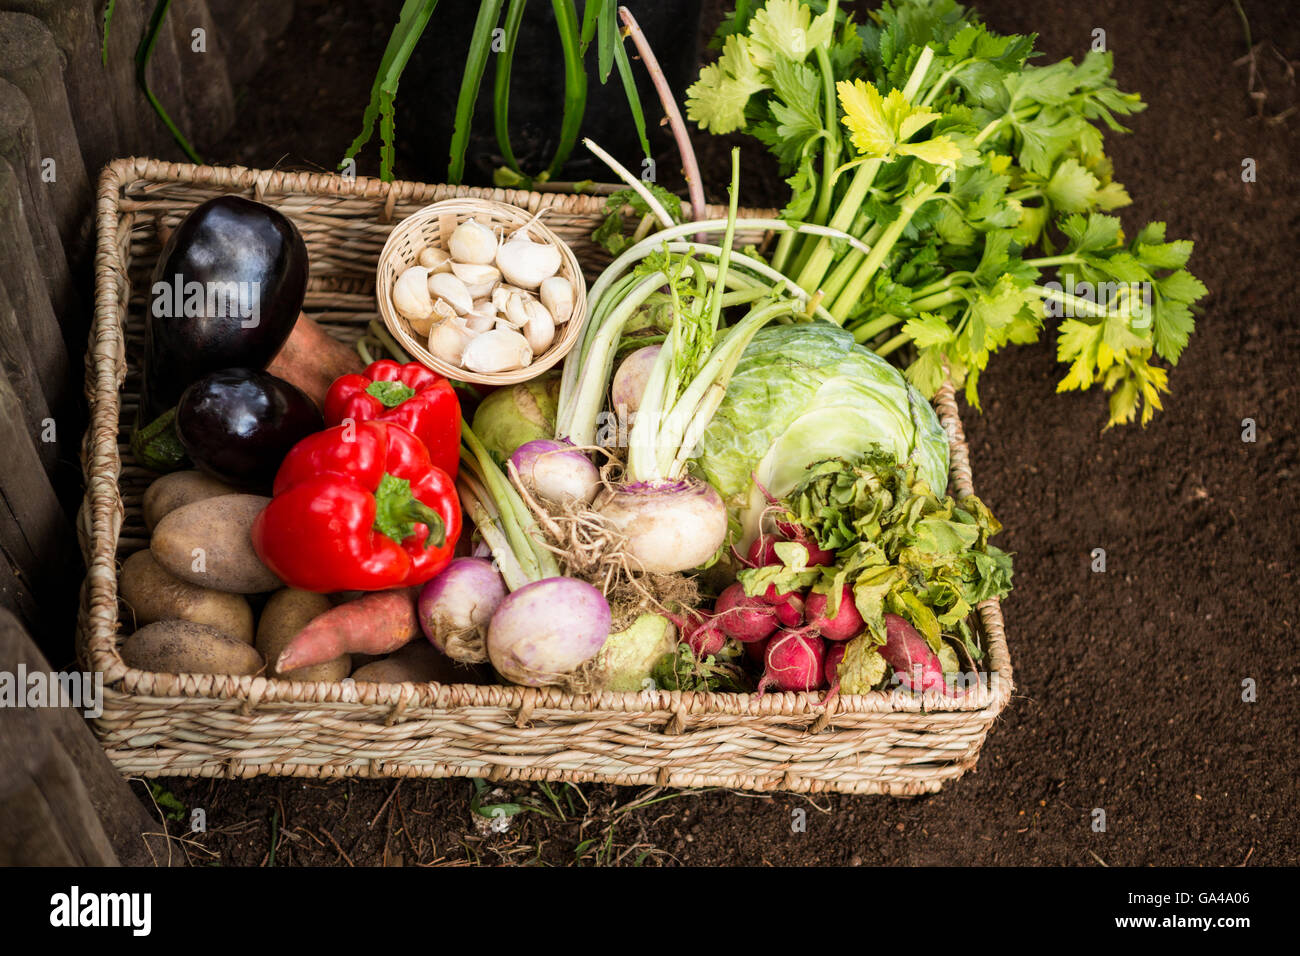 High angle view of vegetables in wicker crate at garden - Stock Image